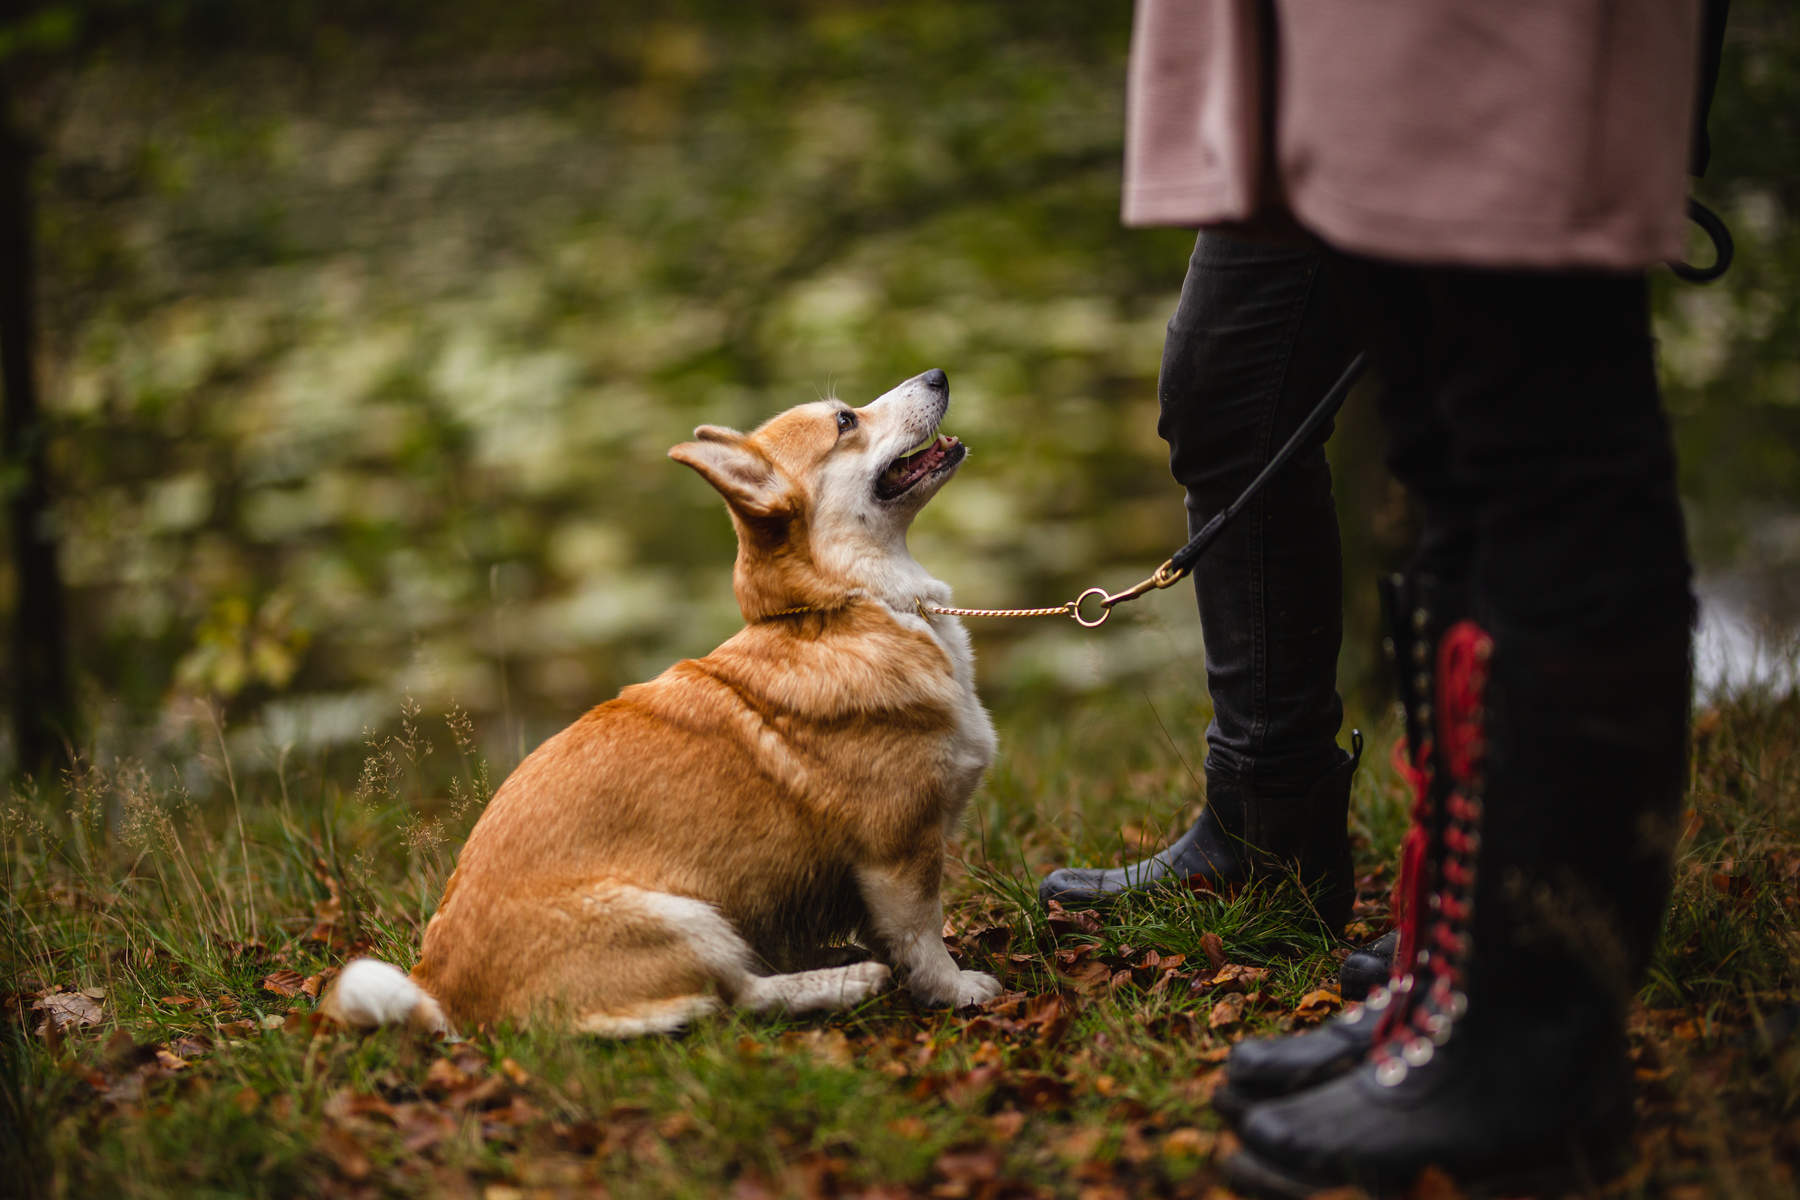 behind-the-scenes-Alicja-Zmys-owska-workshop-dog-photography-01